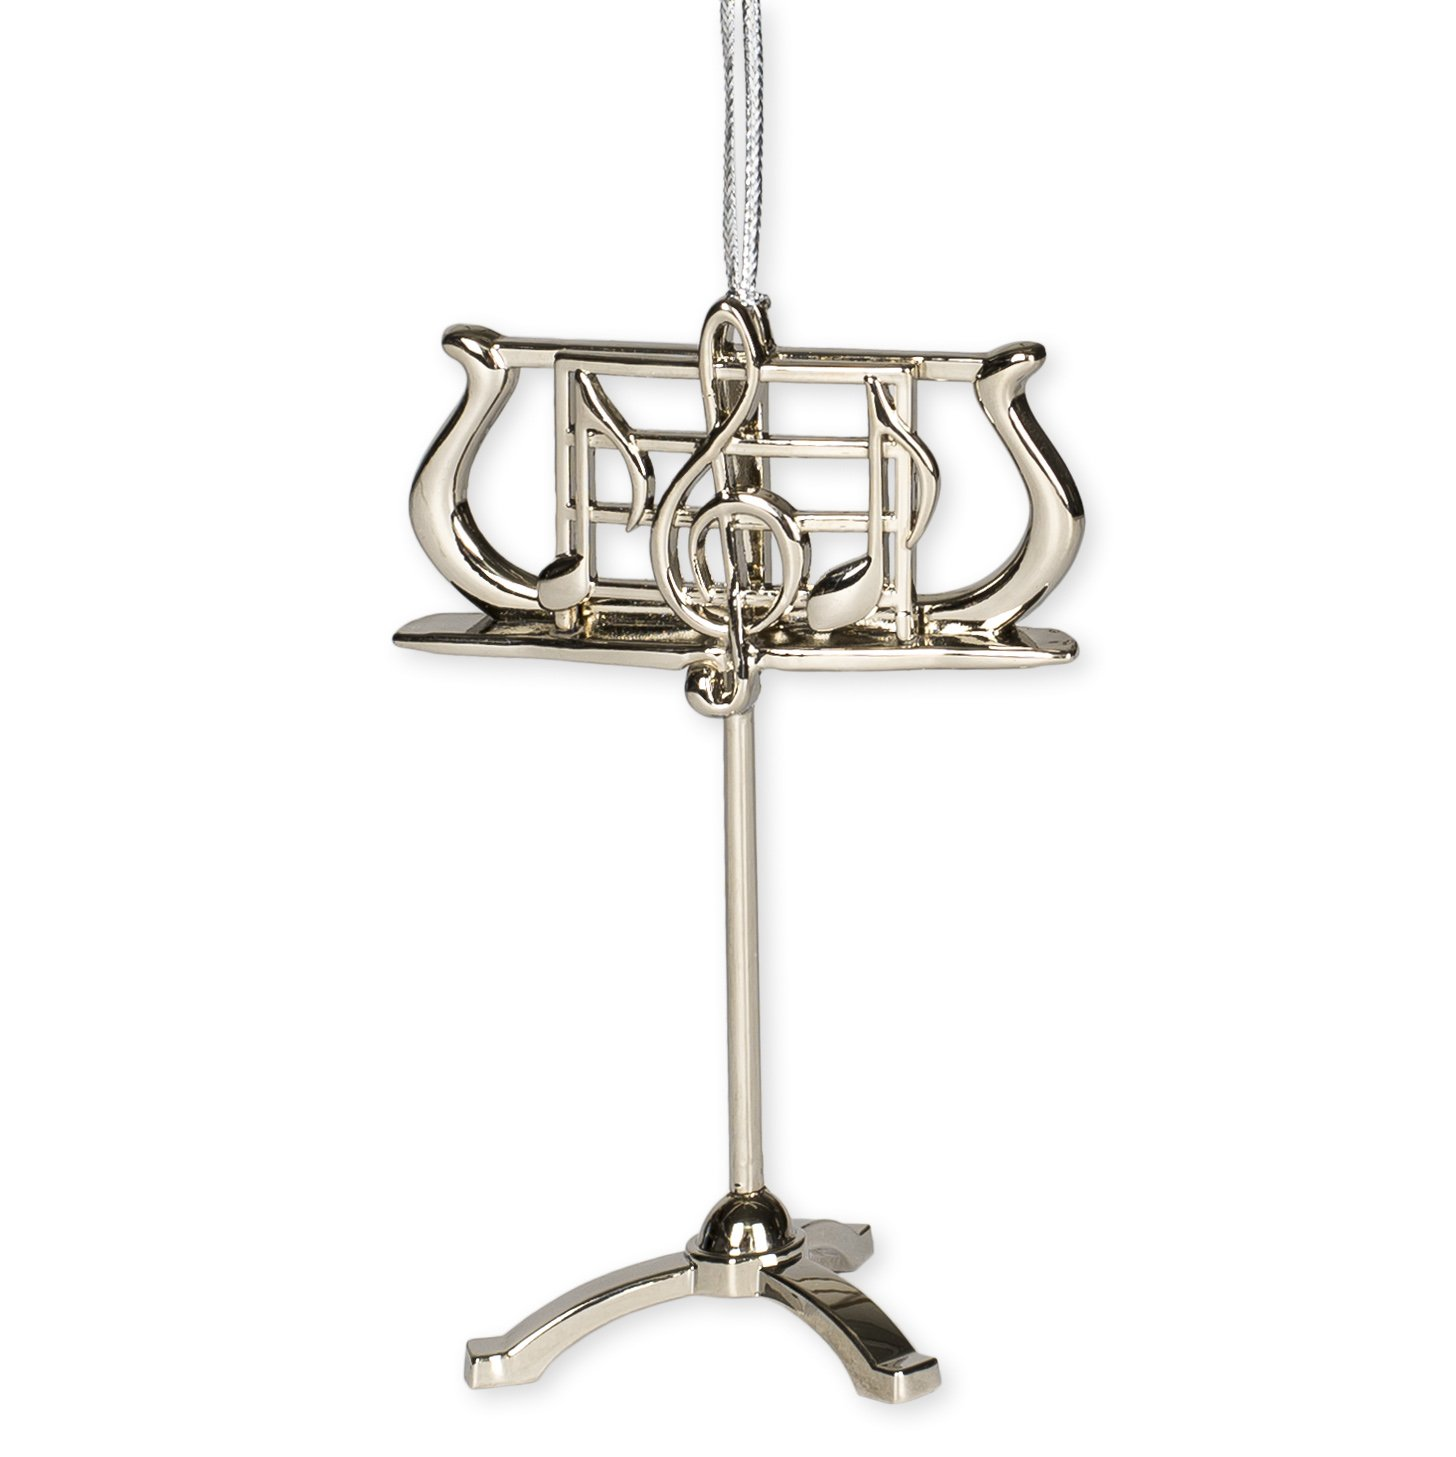 Silver Music Stand Music Instrument Replica Christmas Ornament, Size 3.5 inch